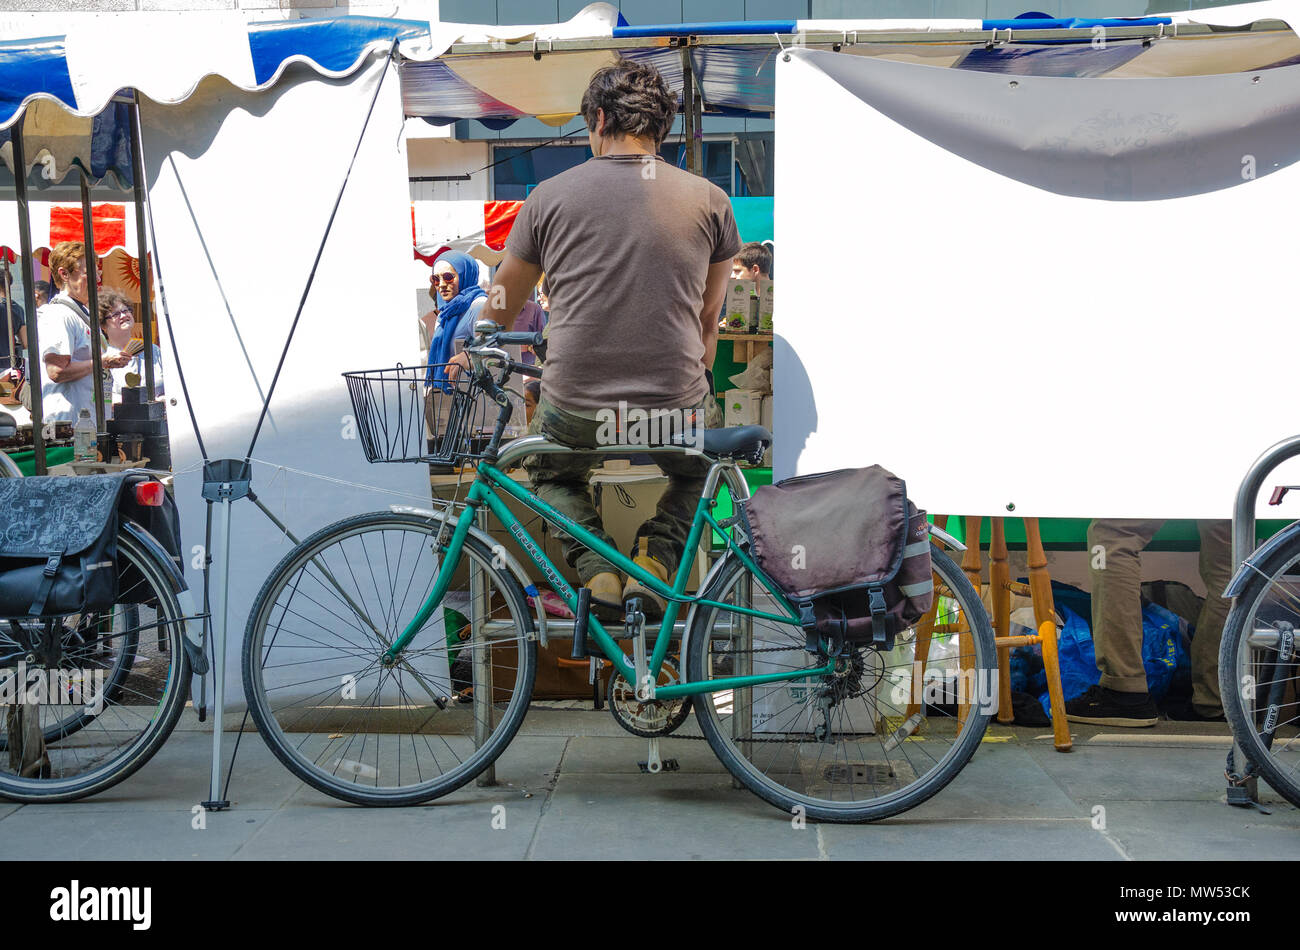 a-man-sits-on-a-bicycle-rack-behind-a-market-stall-on-king-street-in-hammersmith-london-MW53CK.jpg